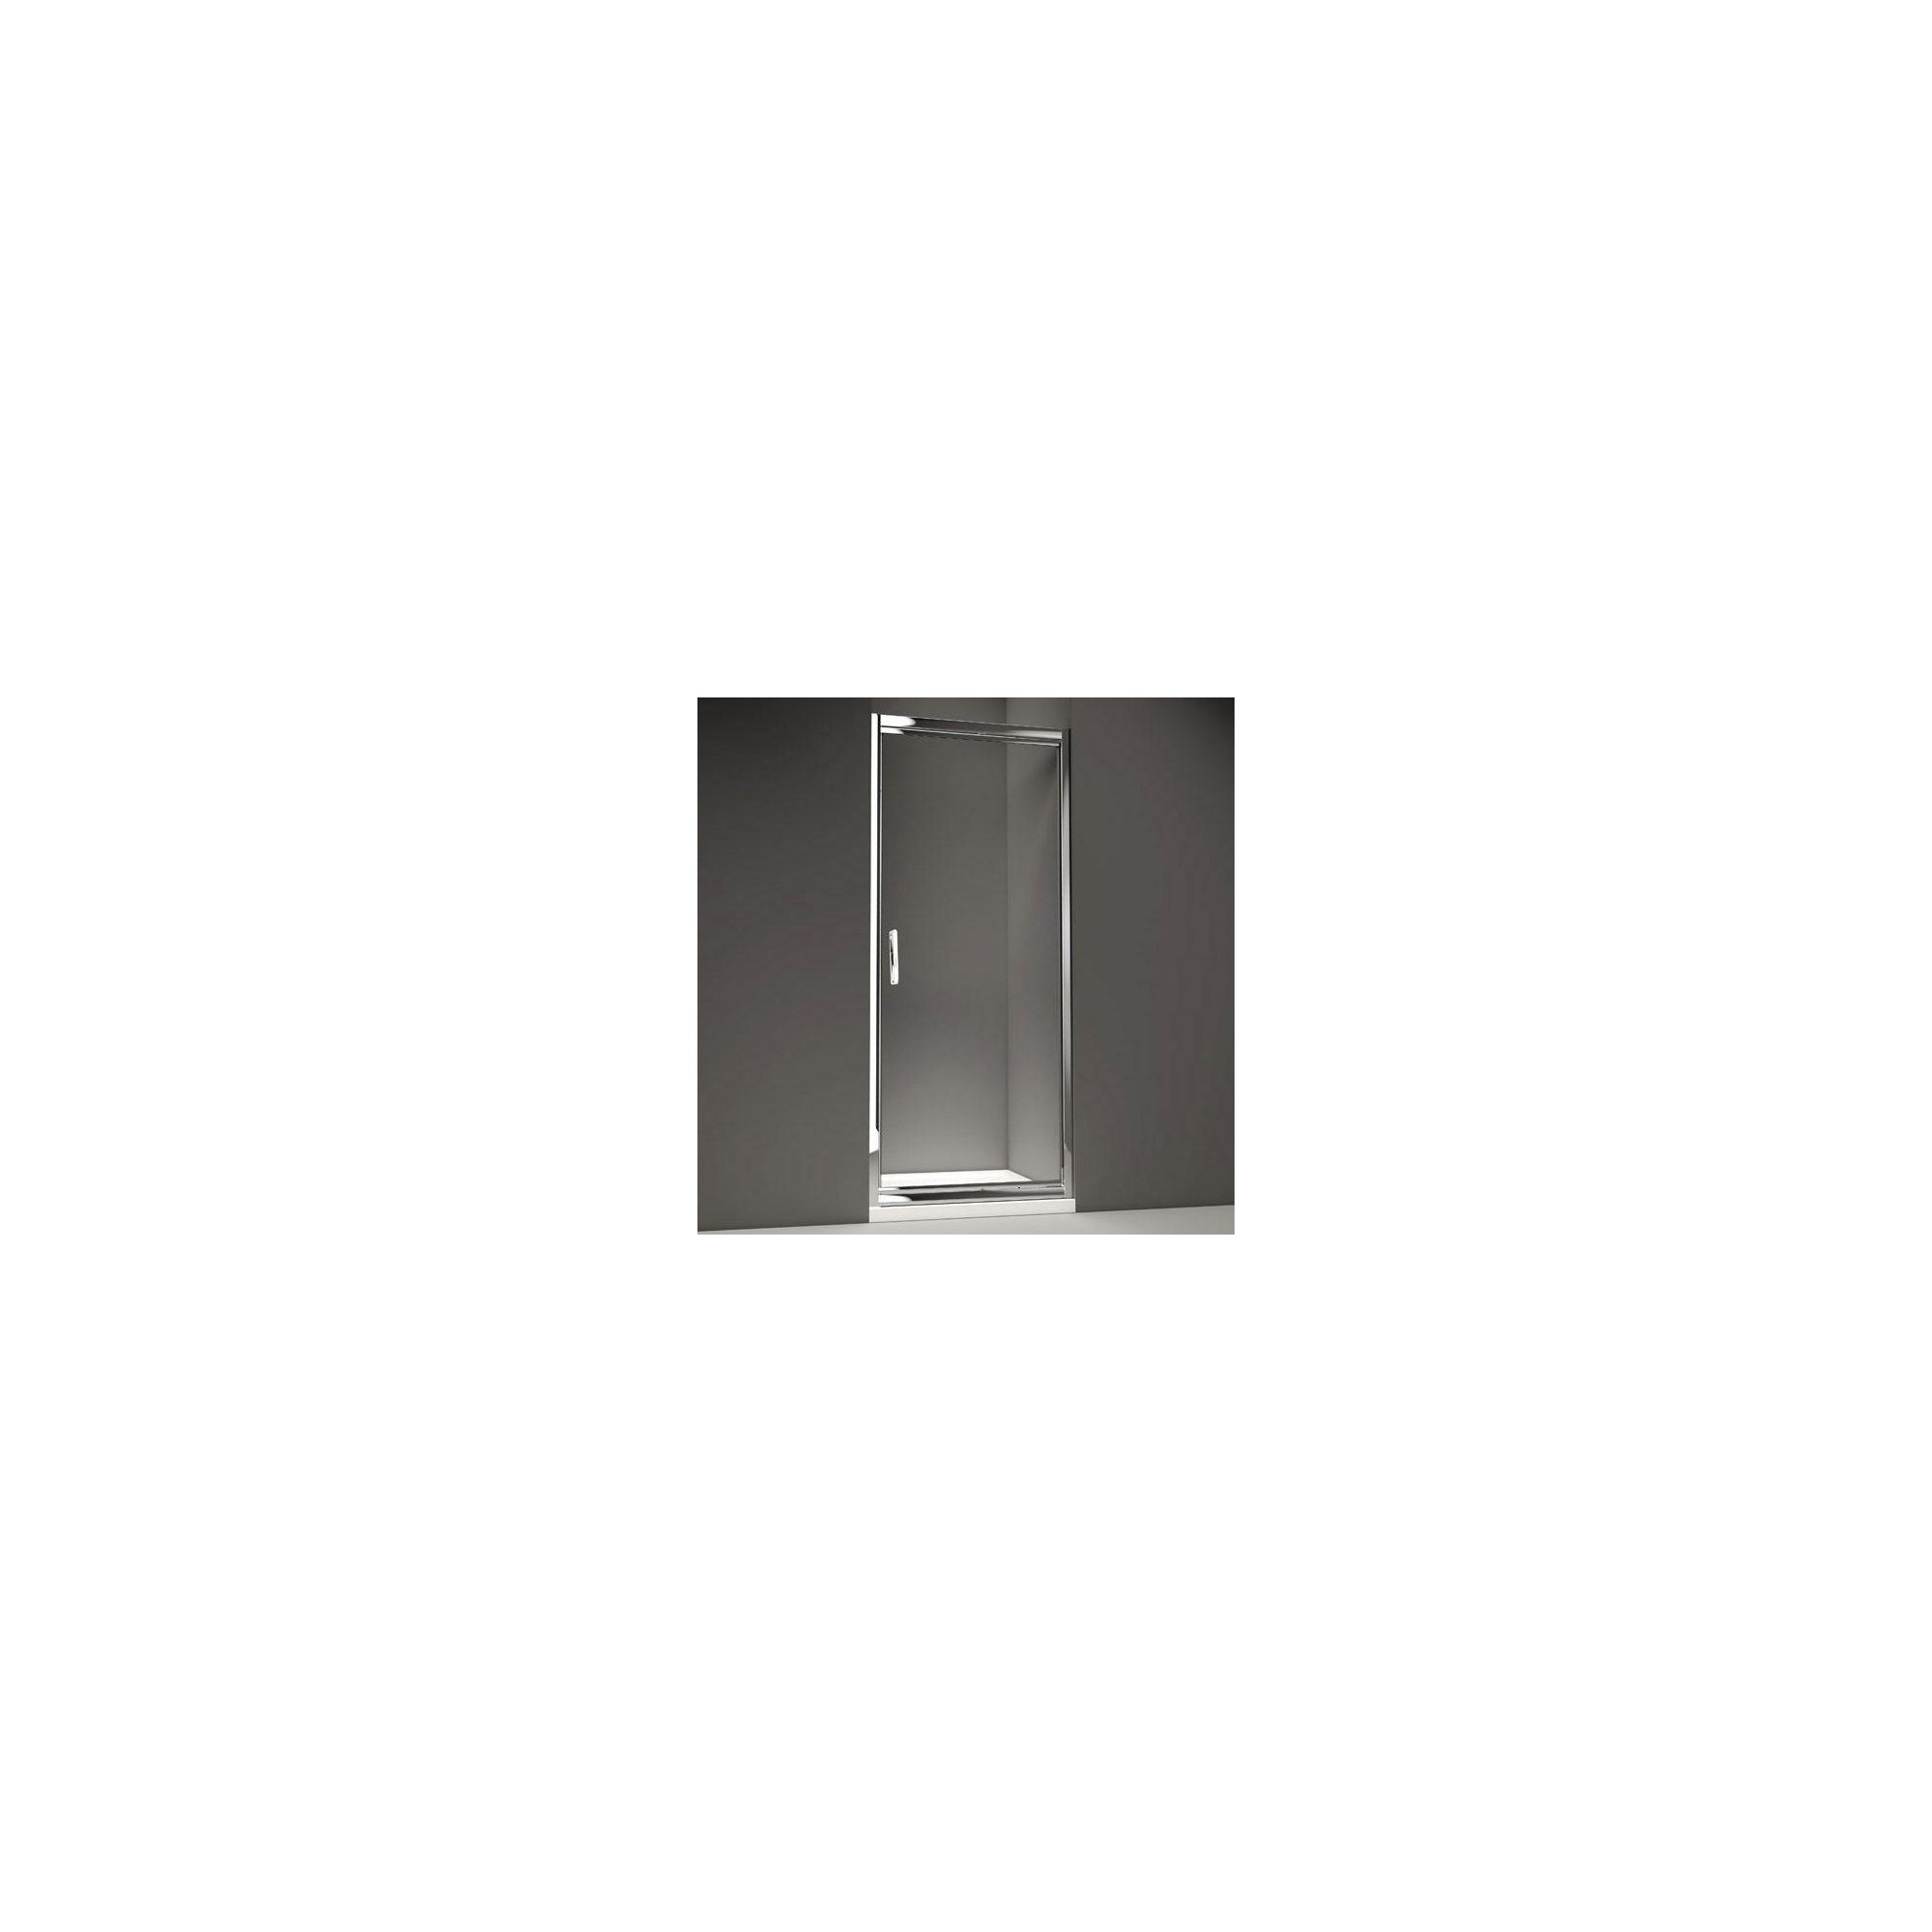 Merlyn Series 8 Infold Shower Door, 900mm Wide, Chrome Frame, 8mm Glass at Tesco Direct